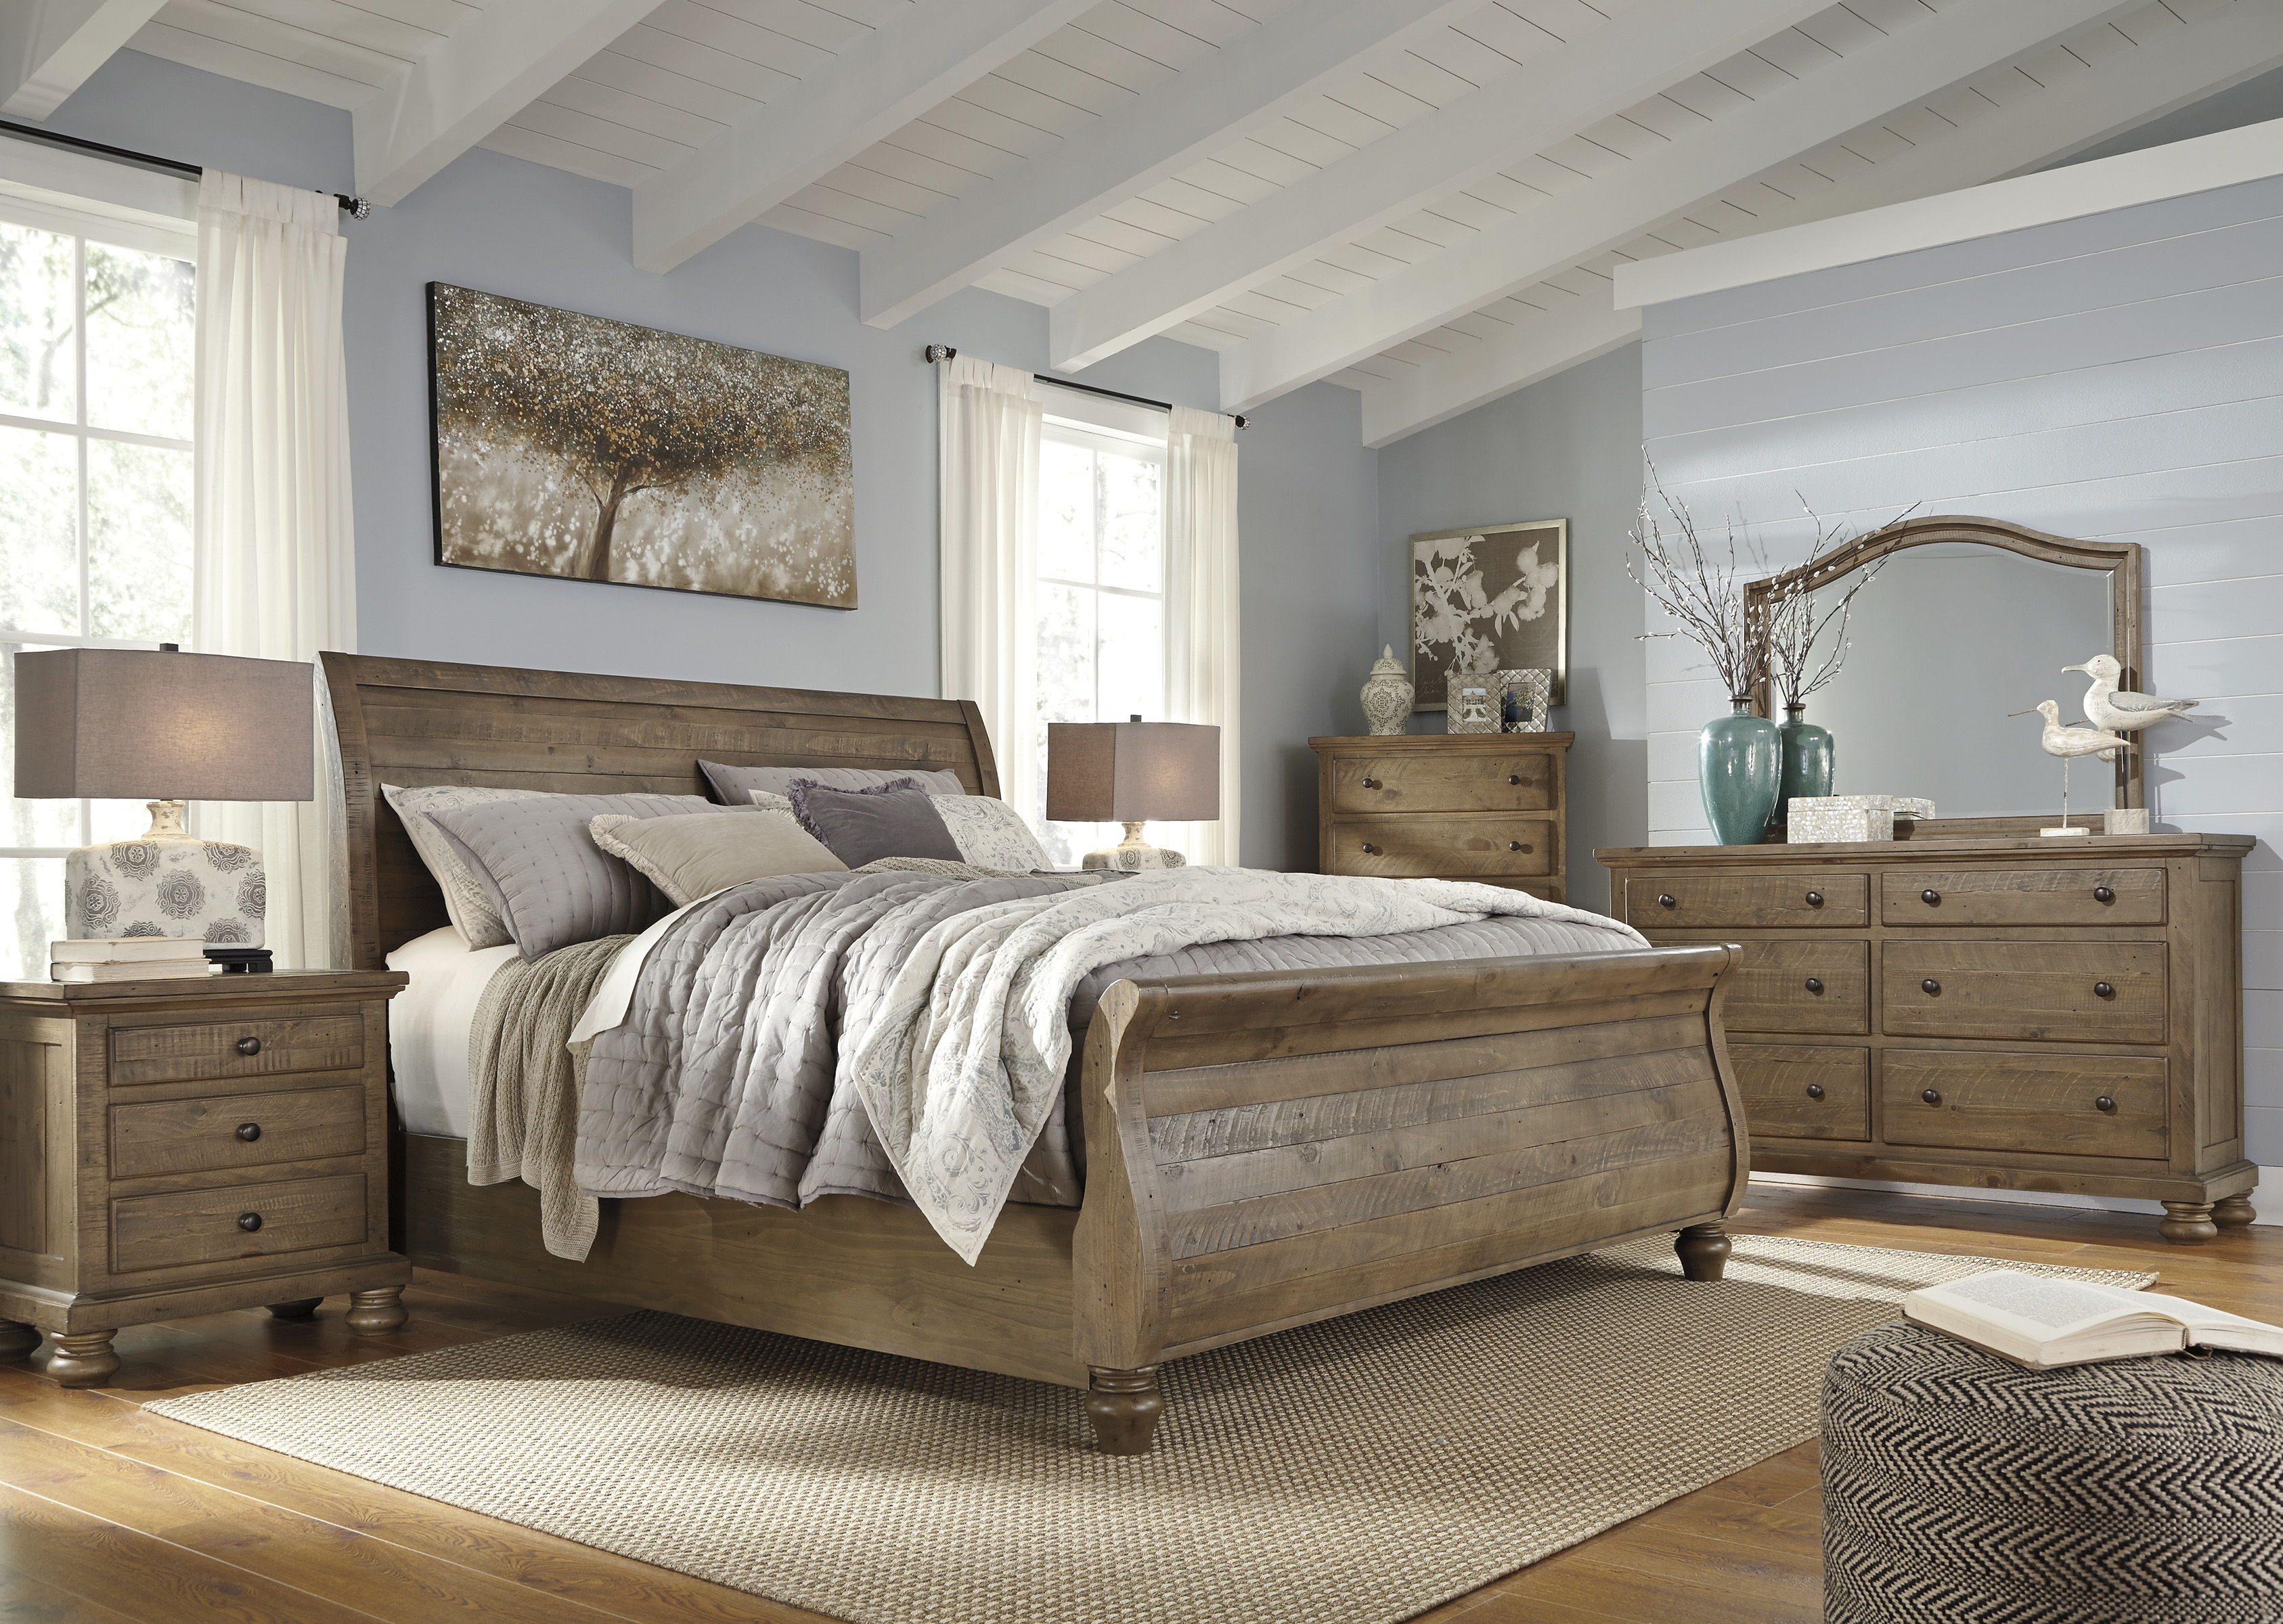 Ashley furniture trishley light brown master bedroom set the classy home No dresser in master bedroom